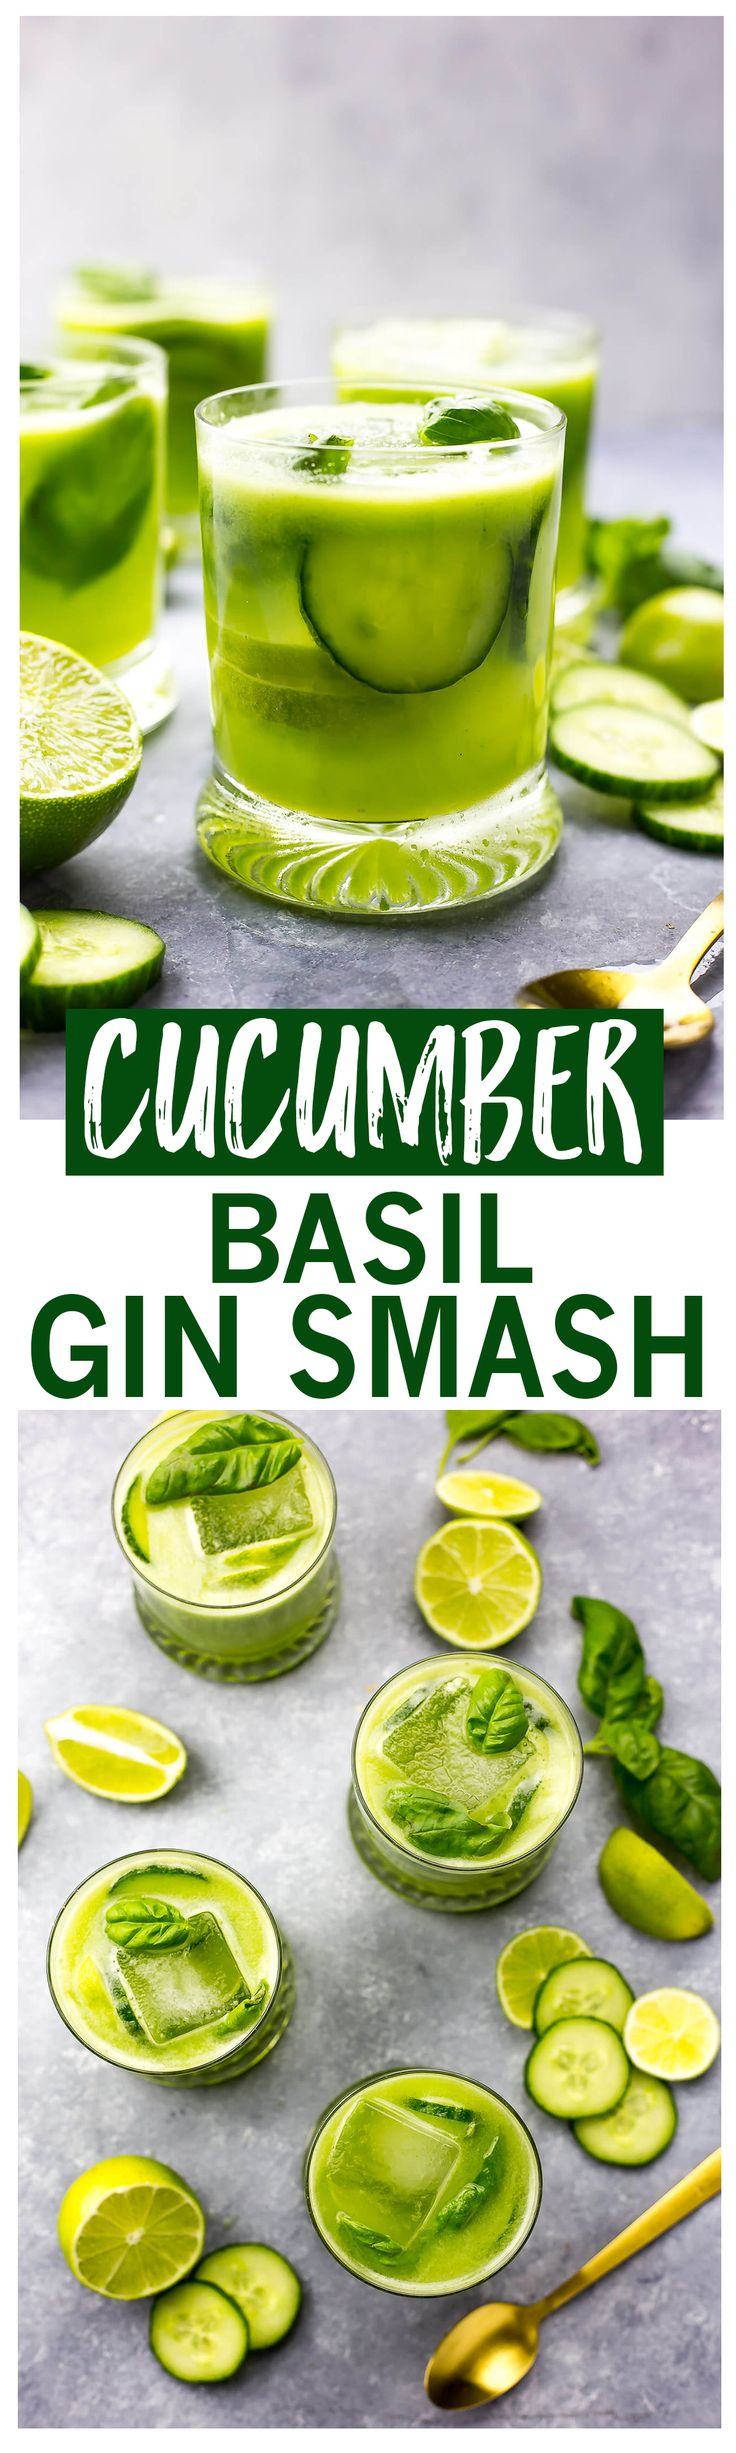 These Cucumber Basil Gin Fizz cocktails are a refreshing and delicious way to ring in the warmer spring weather! Enjoy these vibrant, fizzy green drinks with or without alcohol!